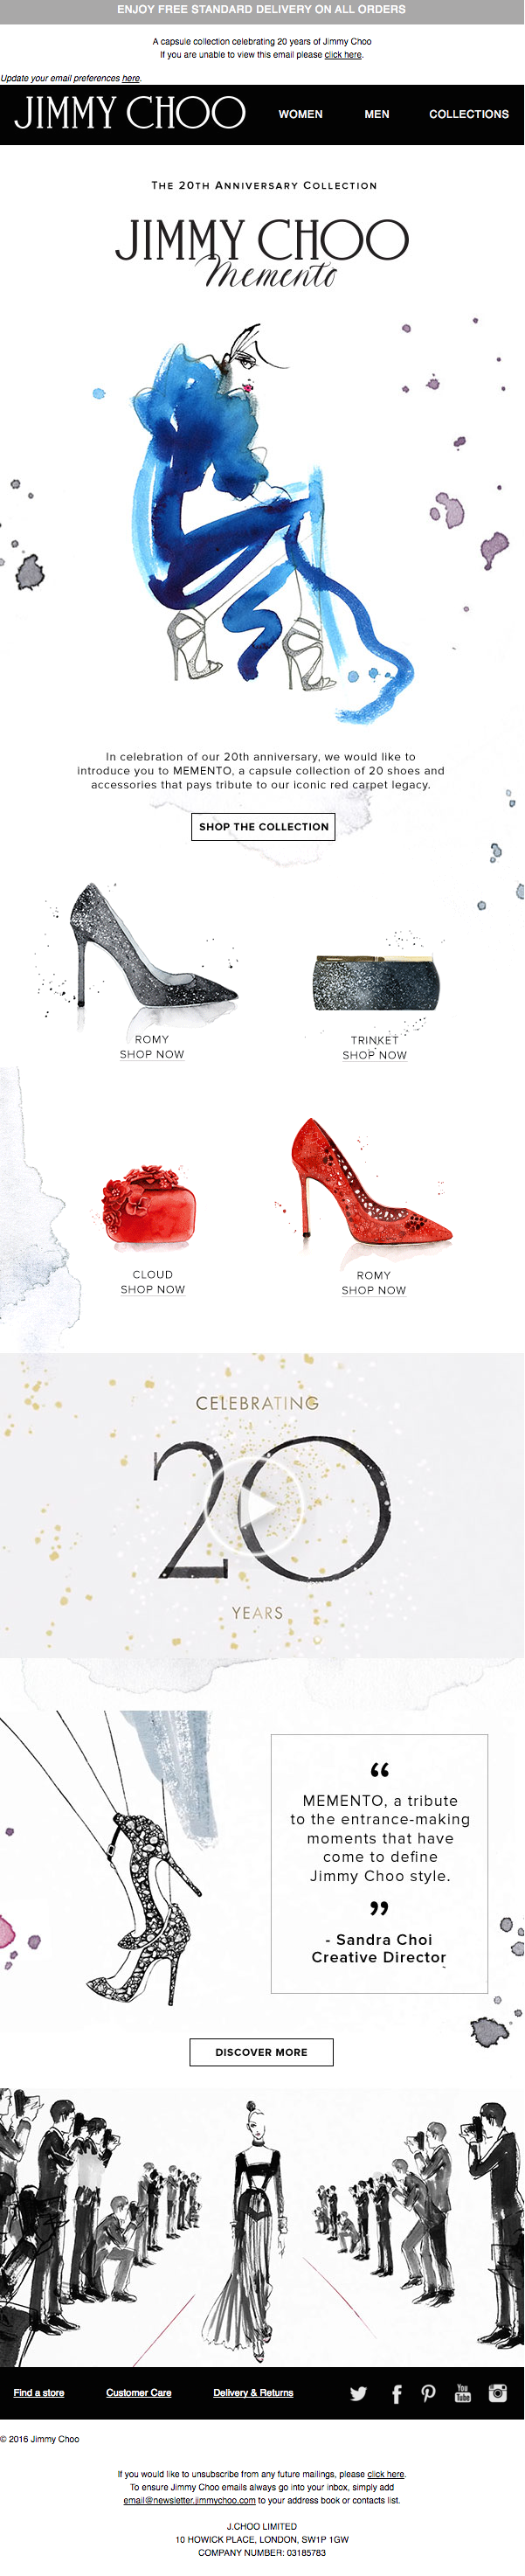 A capsule collection celebrating 20 years of Jimmy Choo